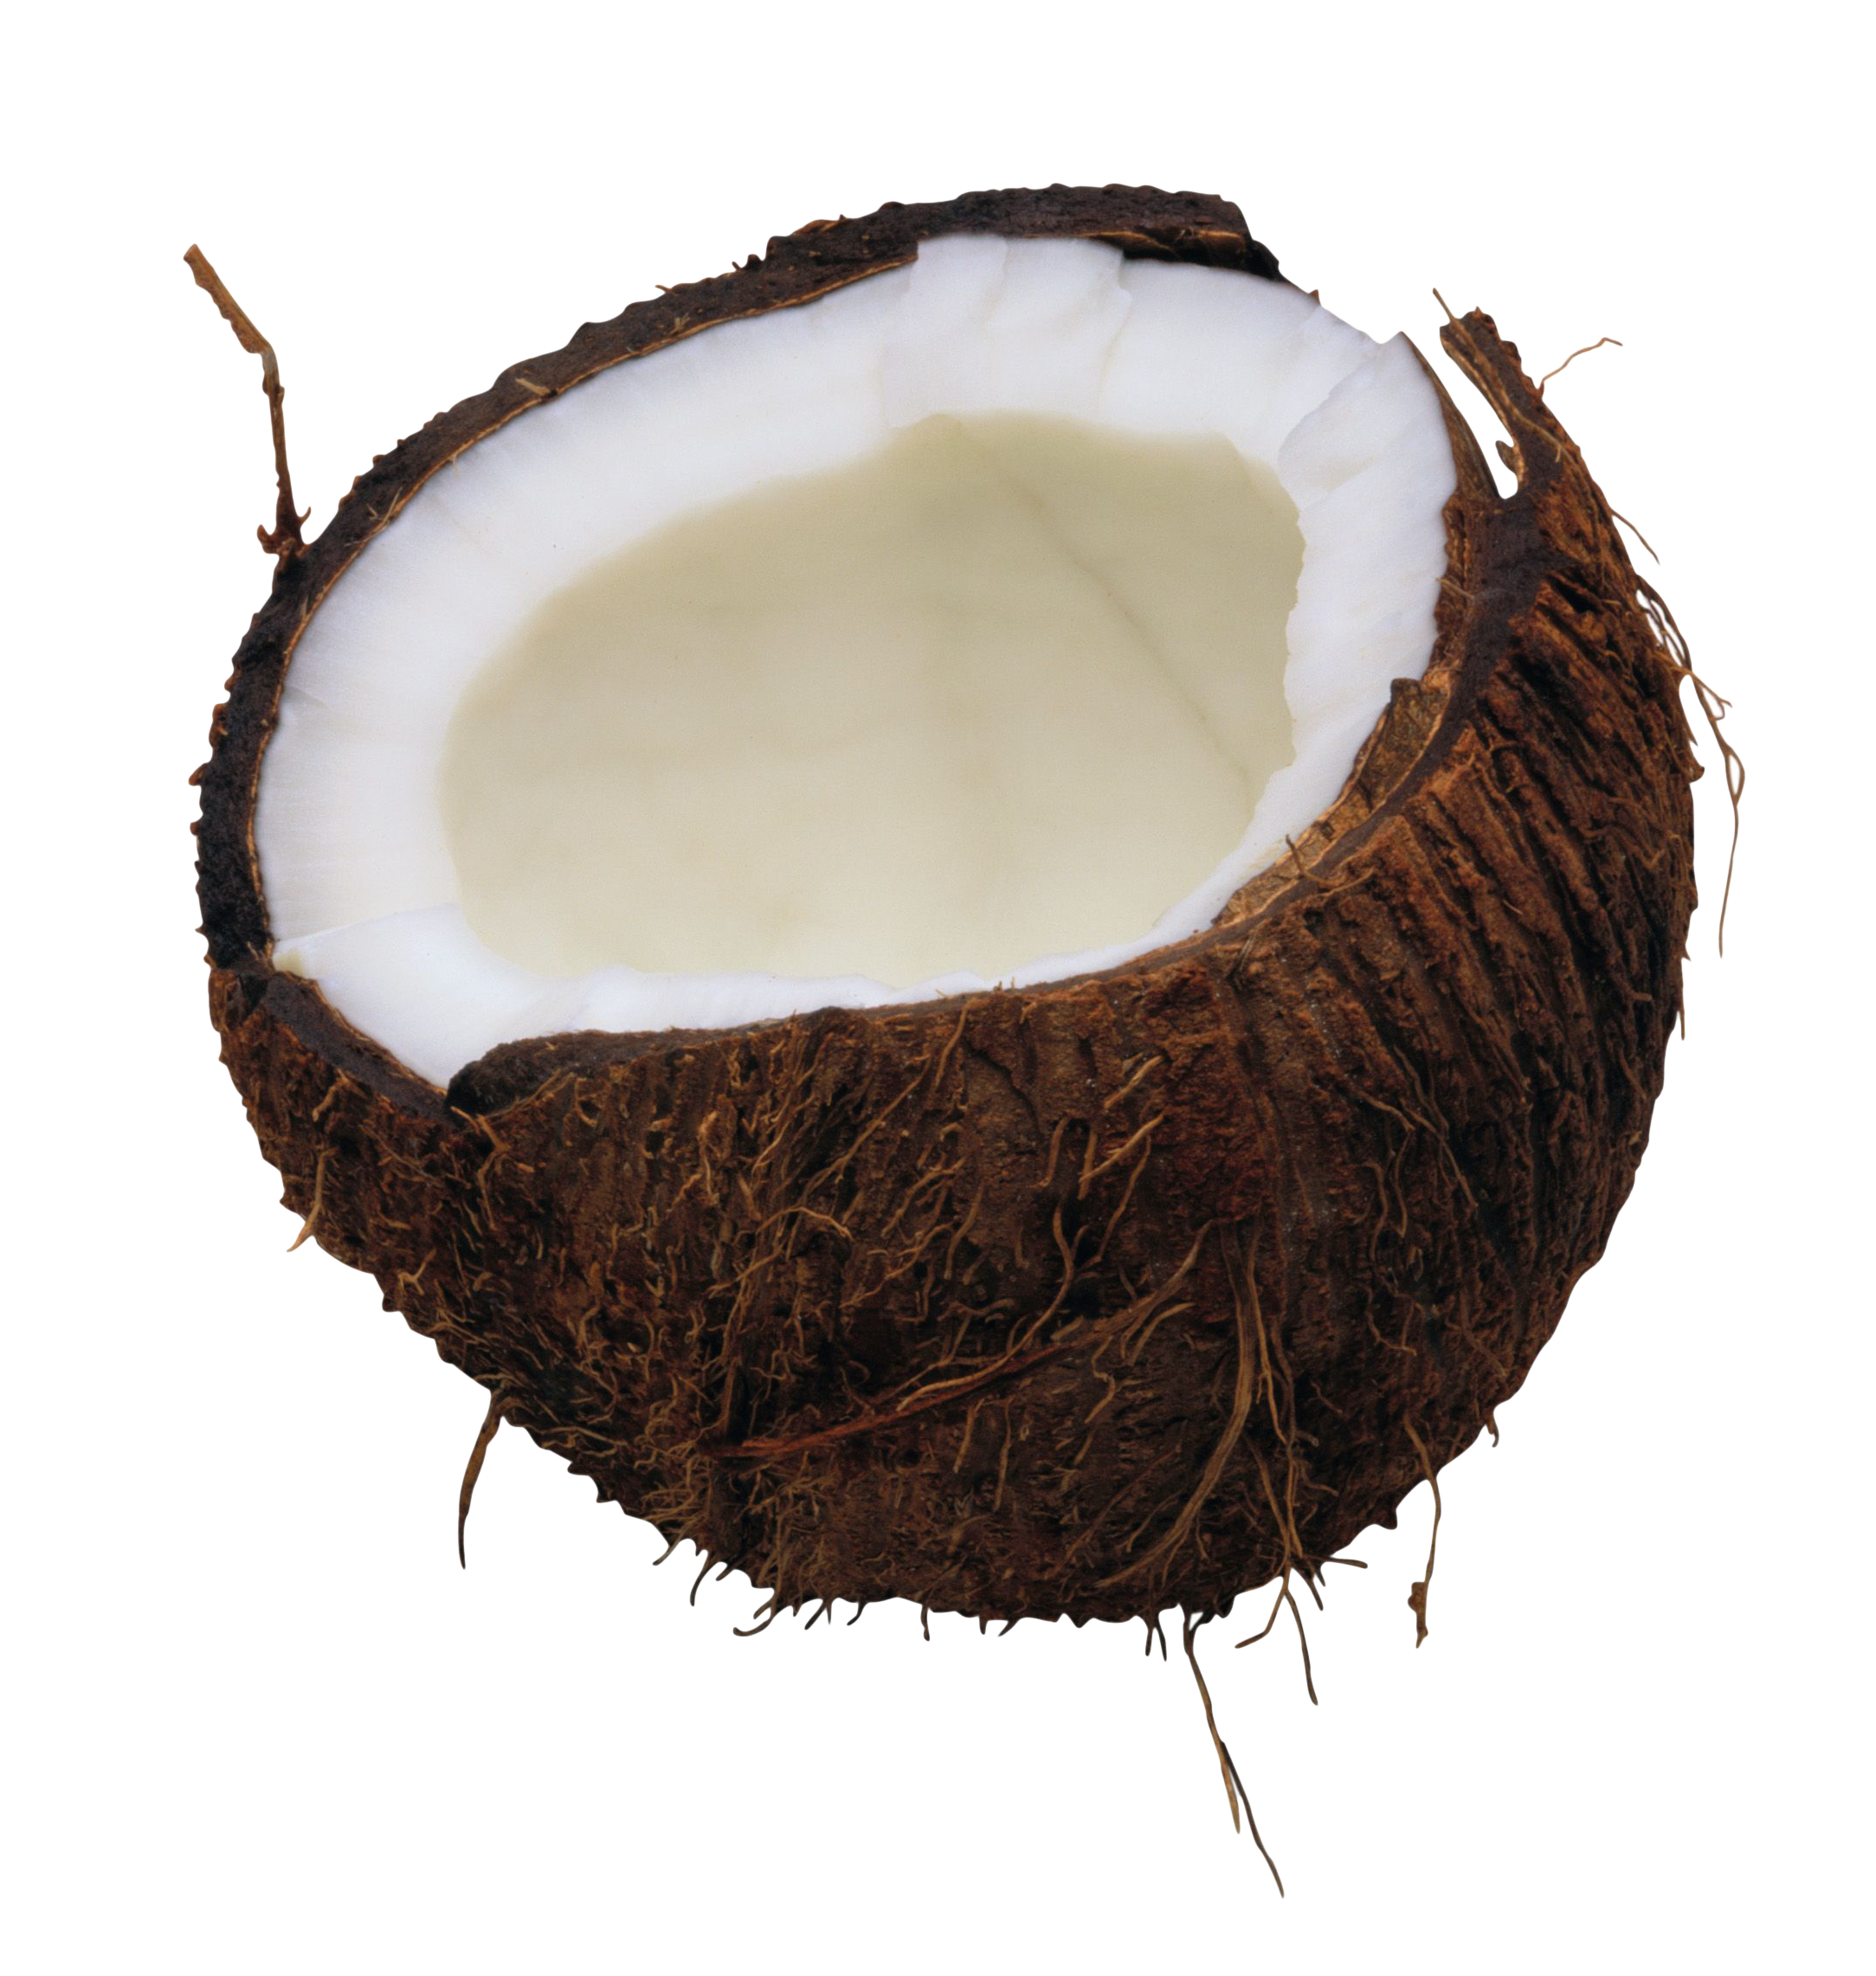 Coconut image purepng free. Png photo graphic transparent download